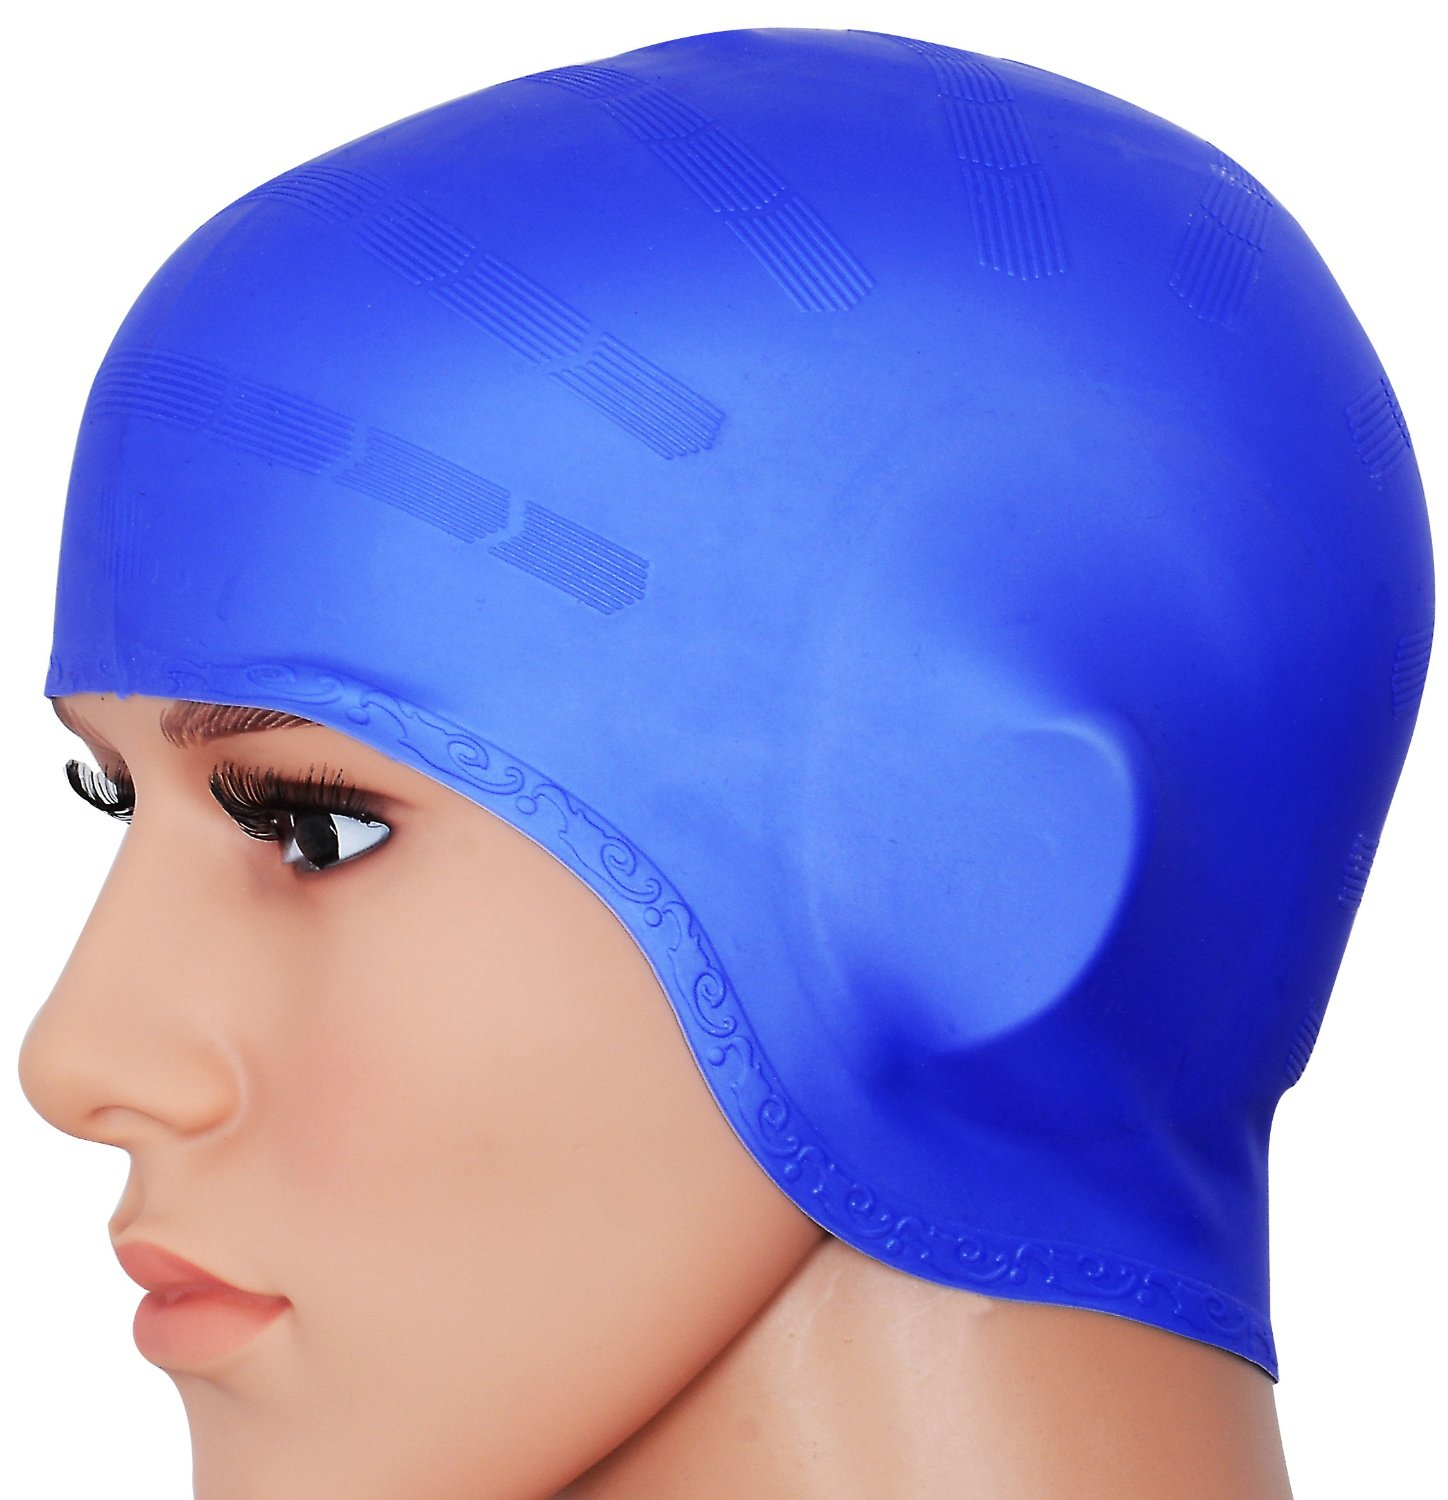 edcc7357add Best Waterproof Swim Cap To Keep Your Hair Dry - Fit Clarity